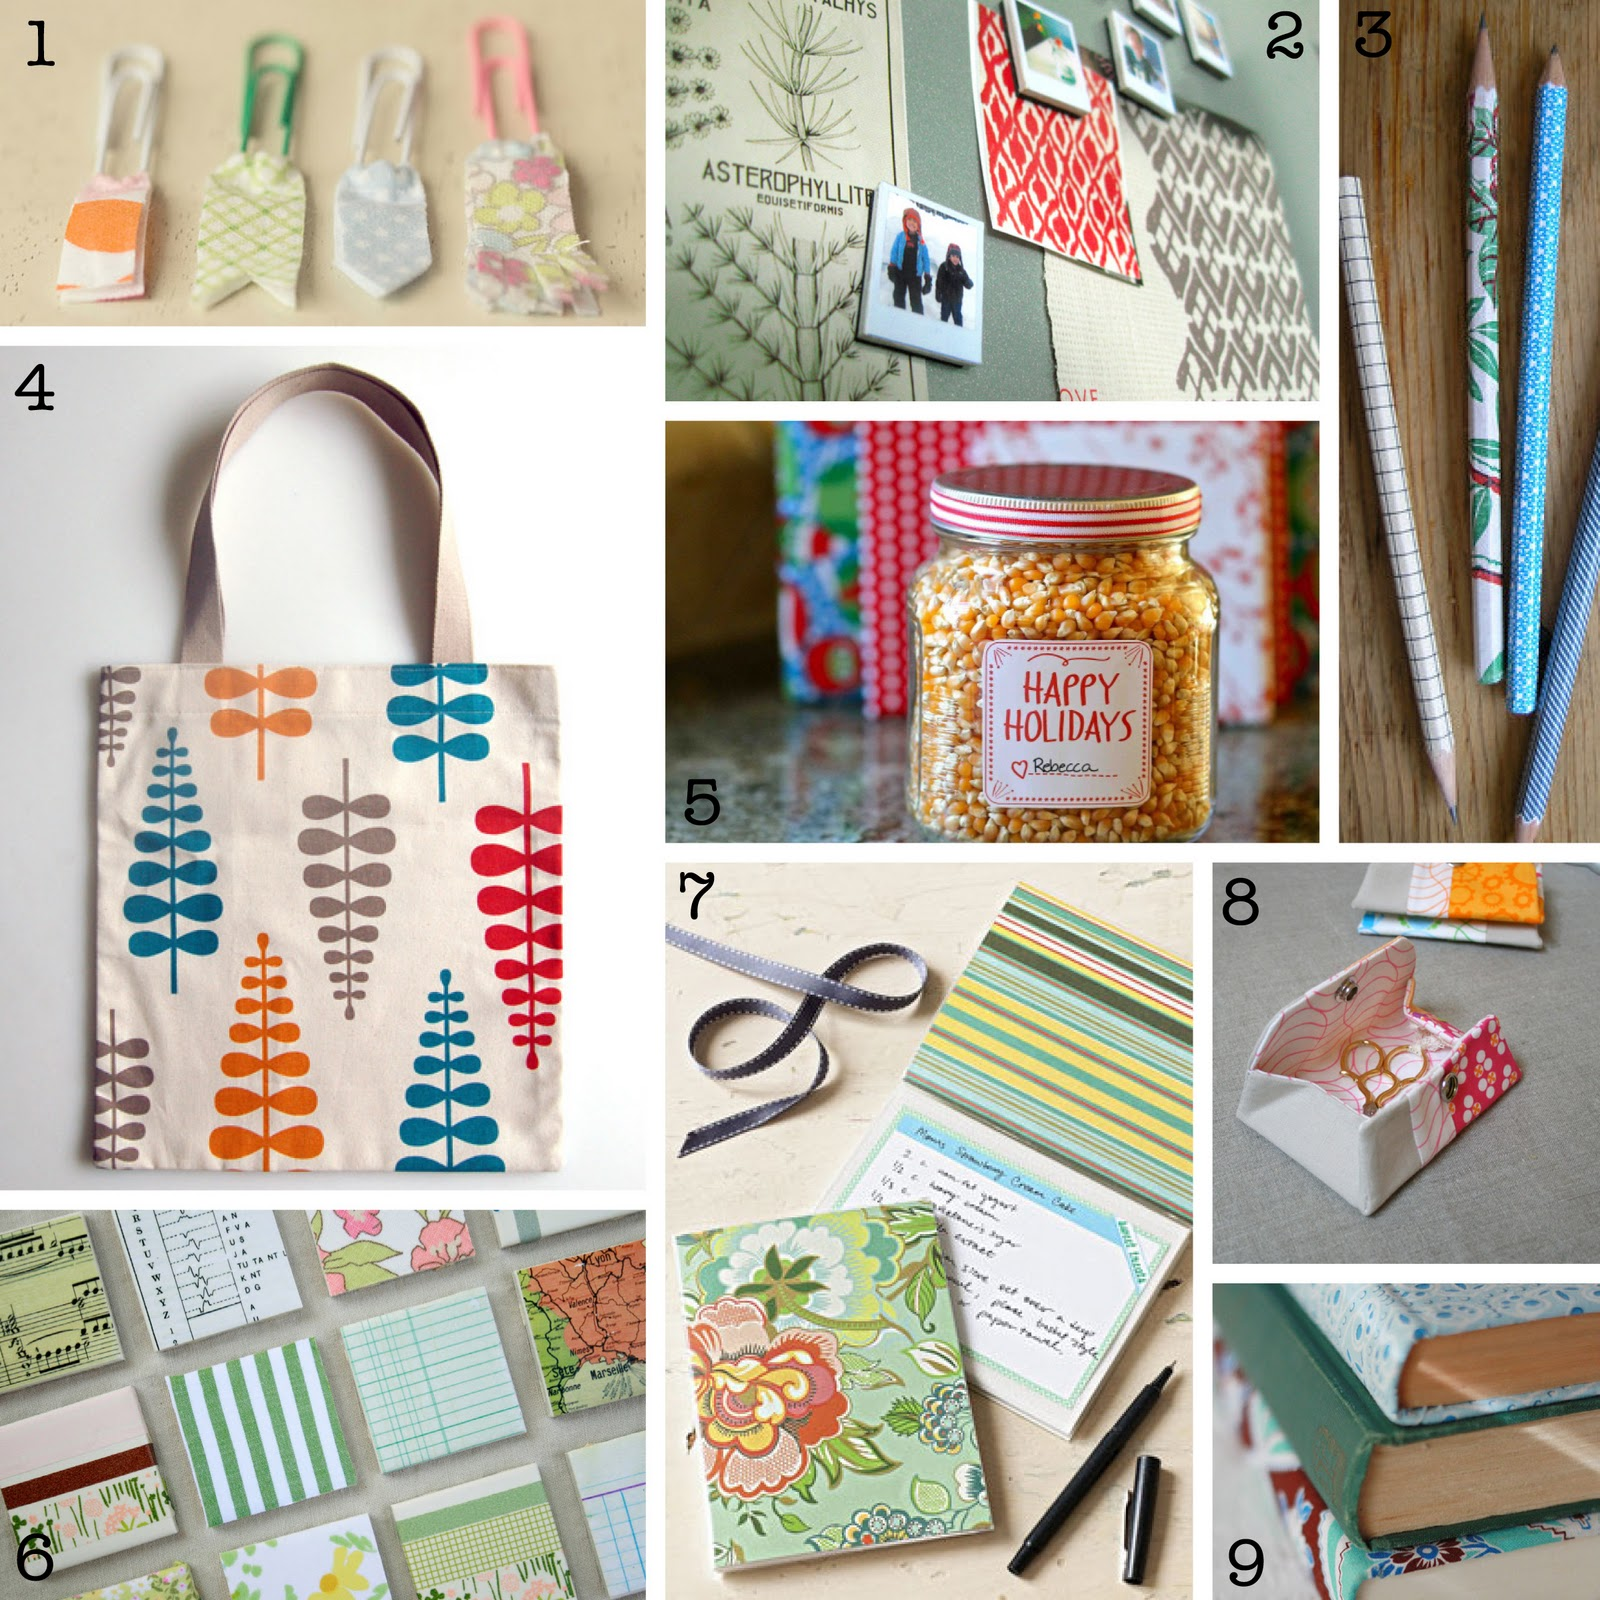 The creative place last minute diy gift ideas for Unique ideas for christmas gifts